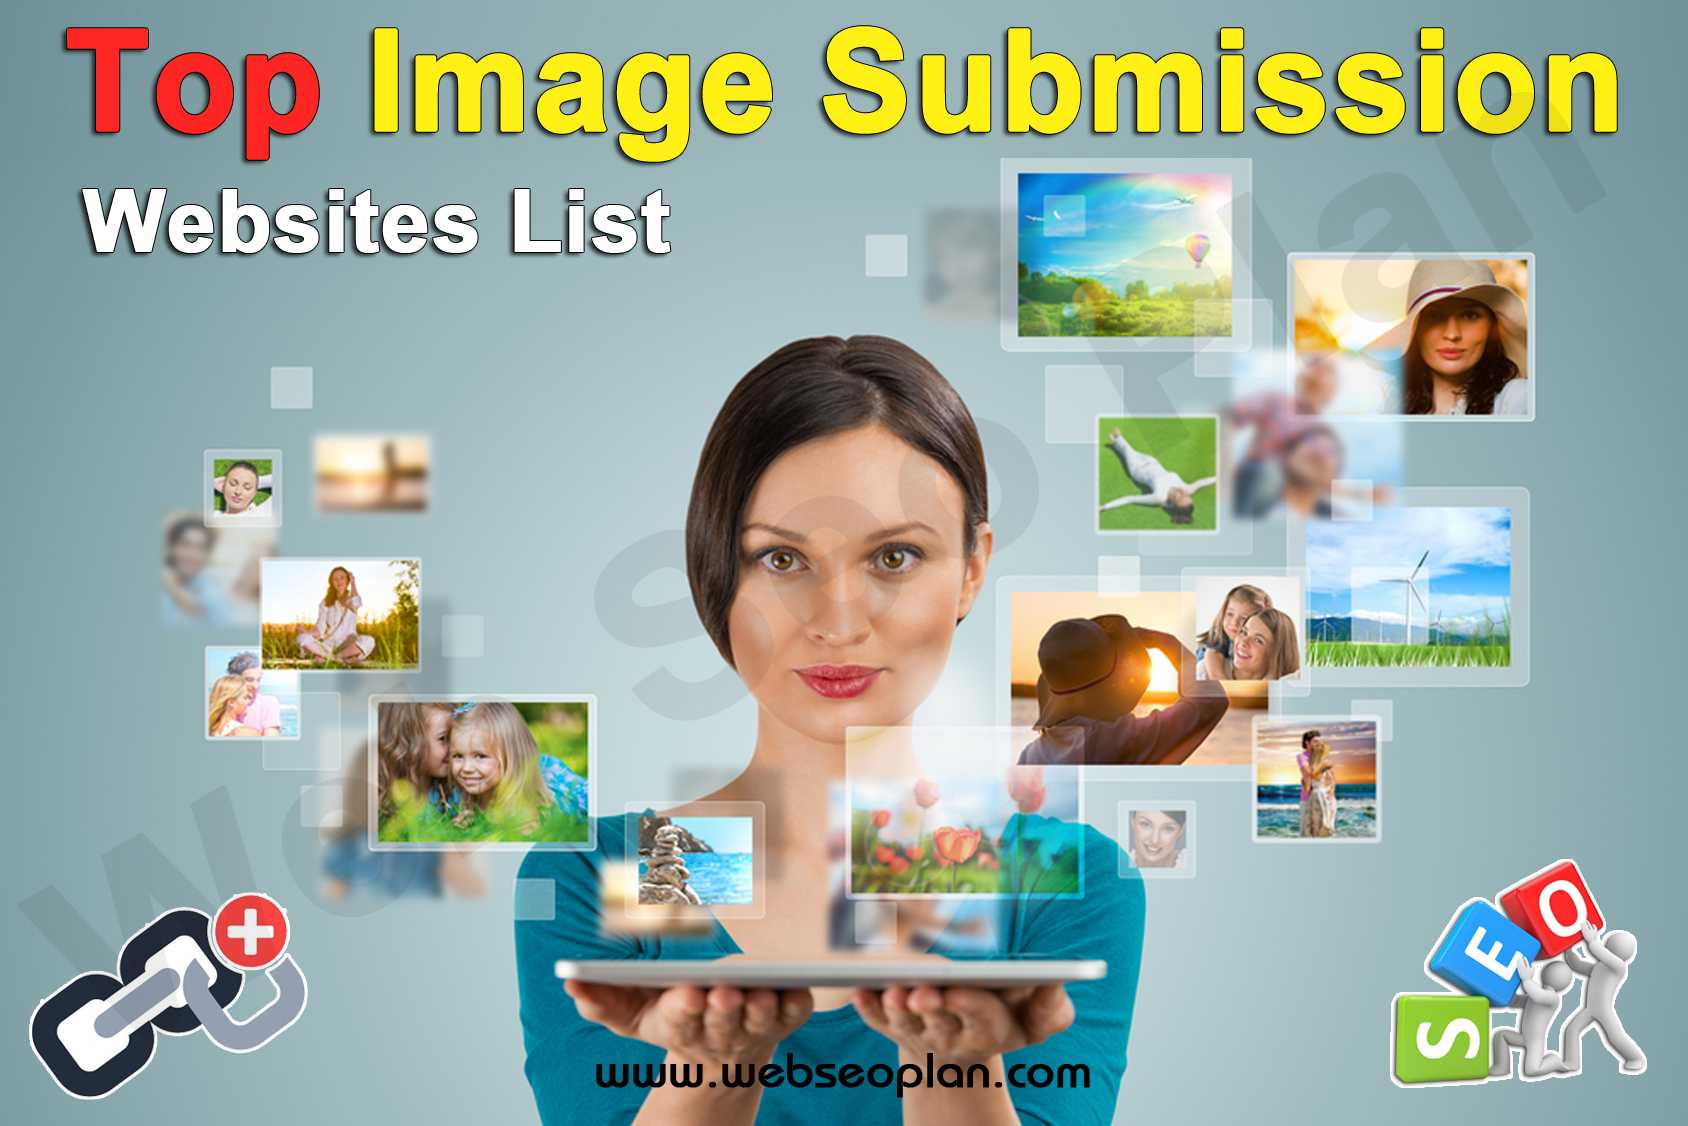 Top Image Submission Sites List